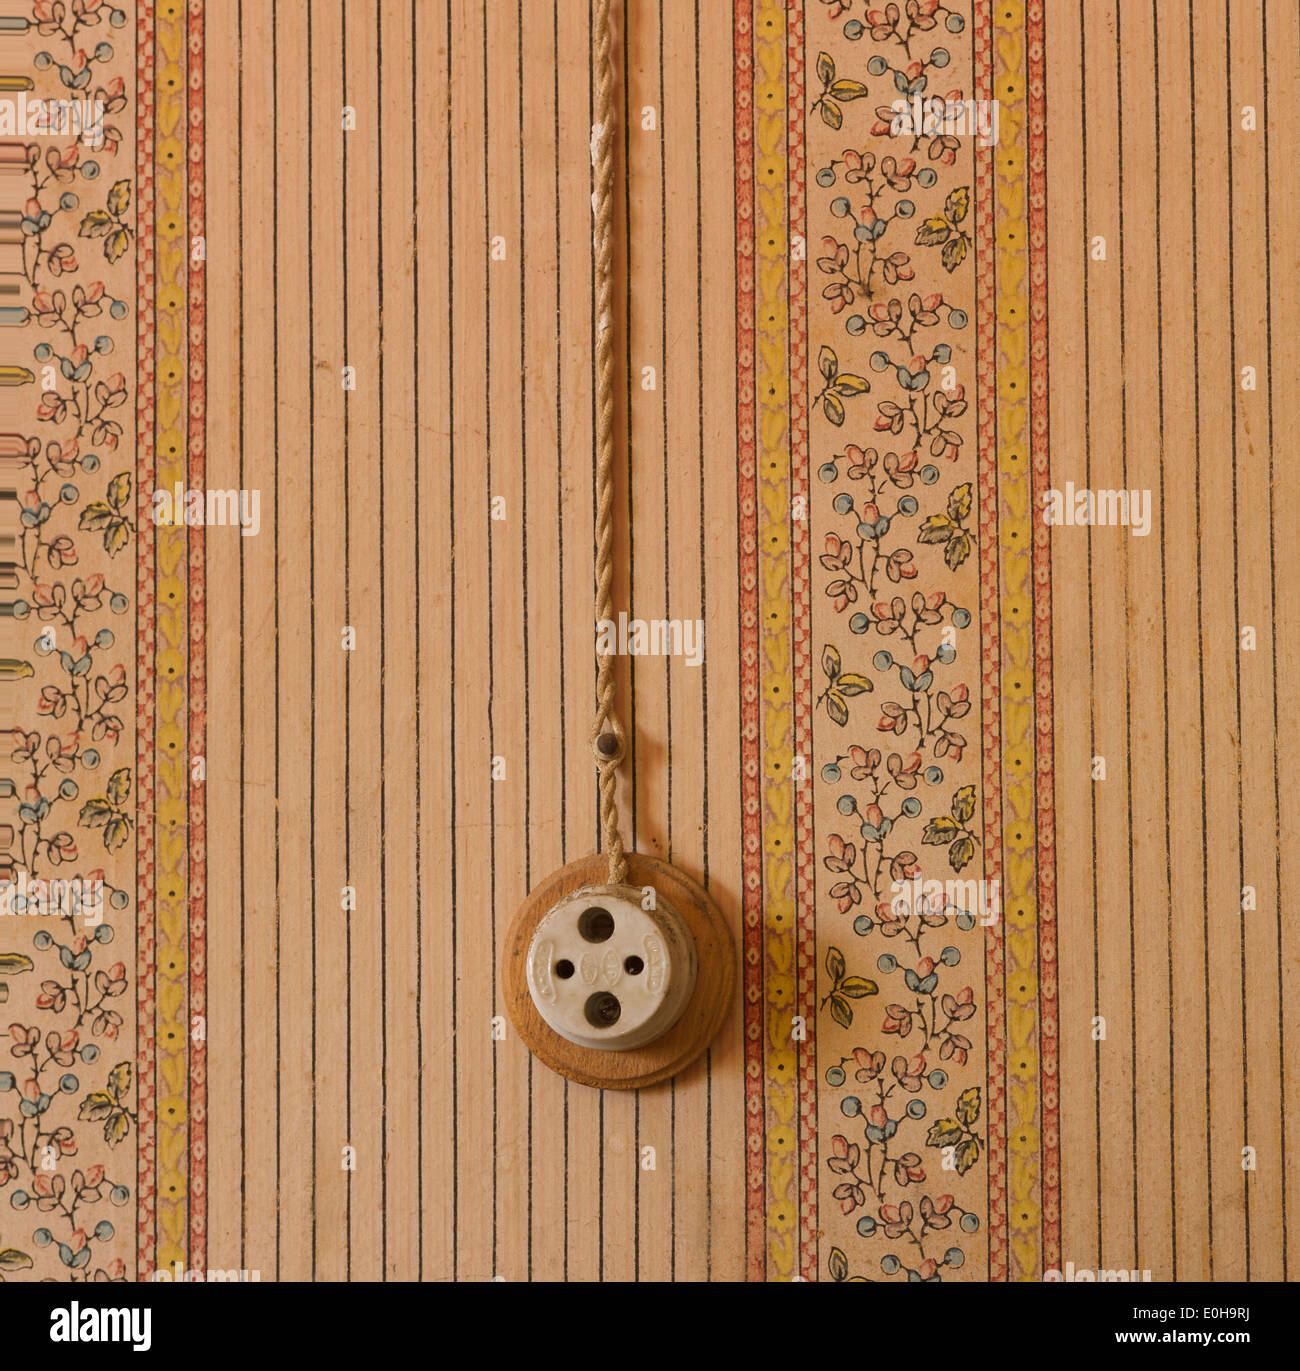 Old Electrical Wiring Stock Photos Ac Socket Fashioned French France Europe In A House Set For